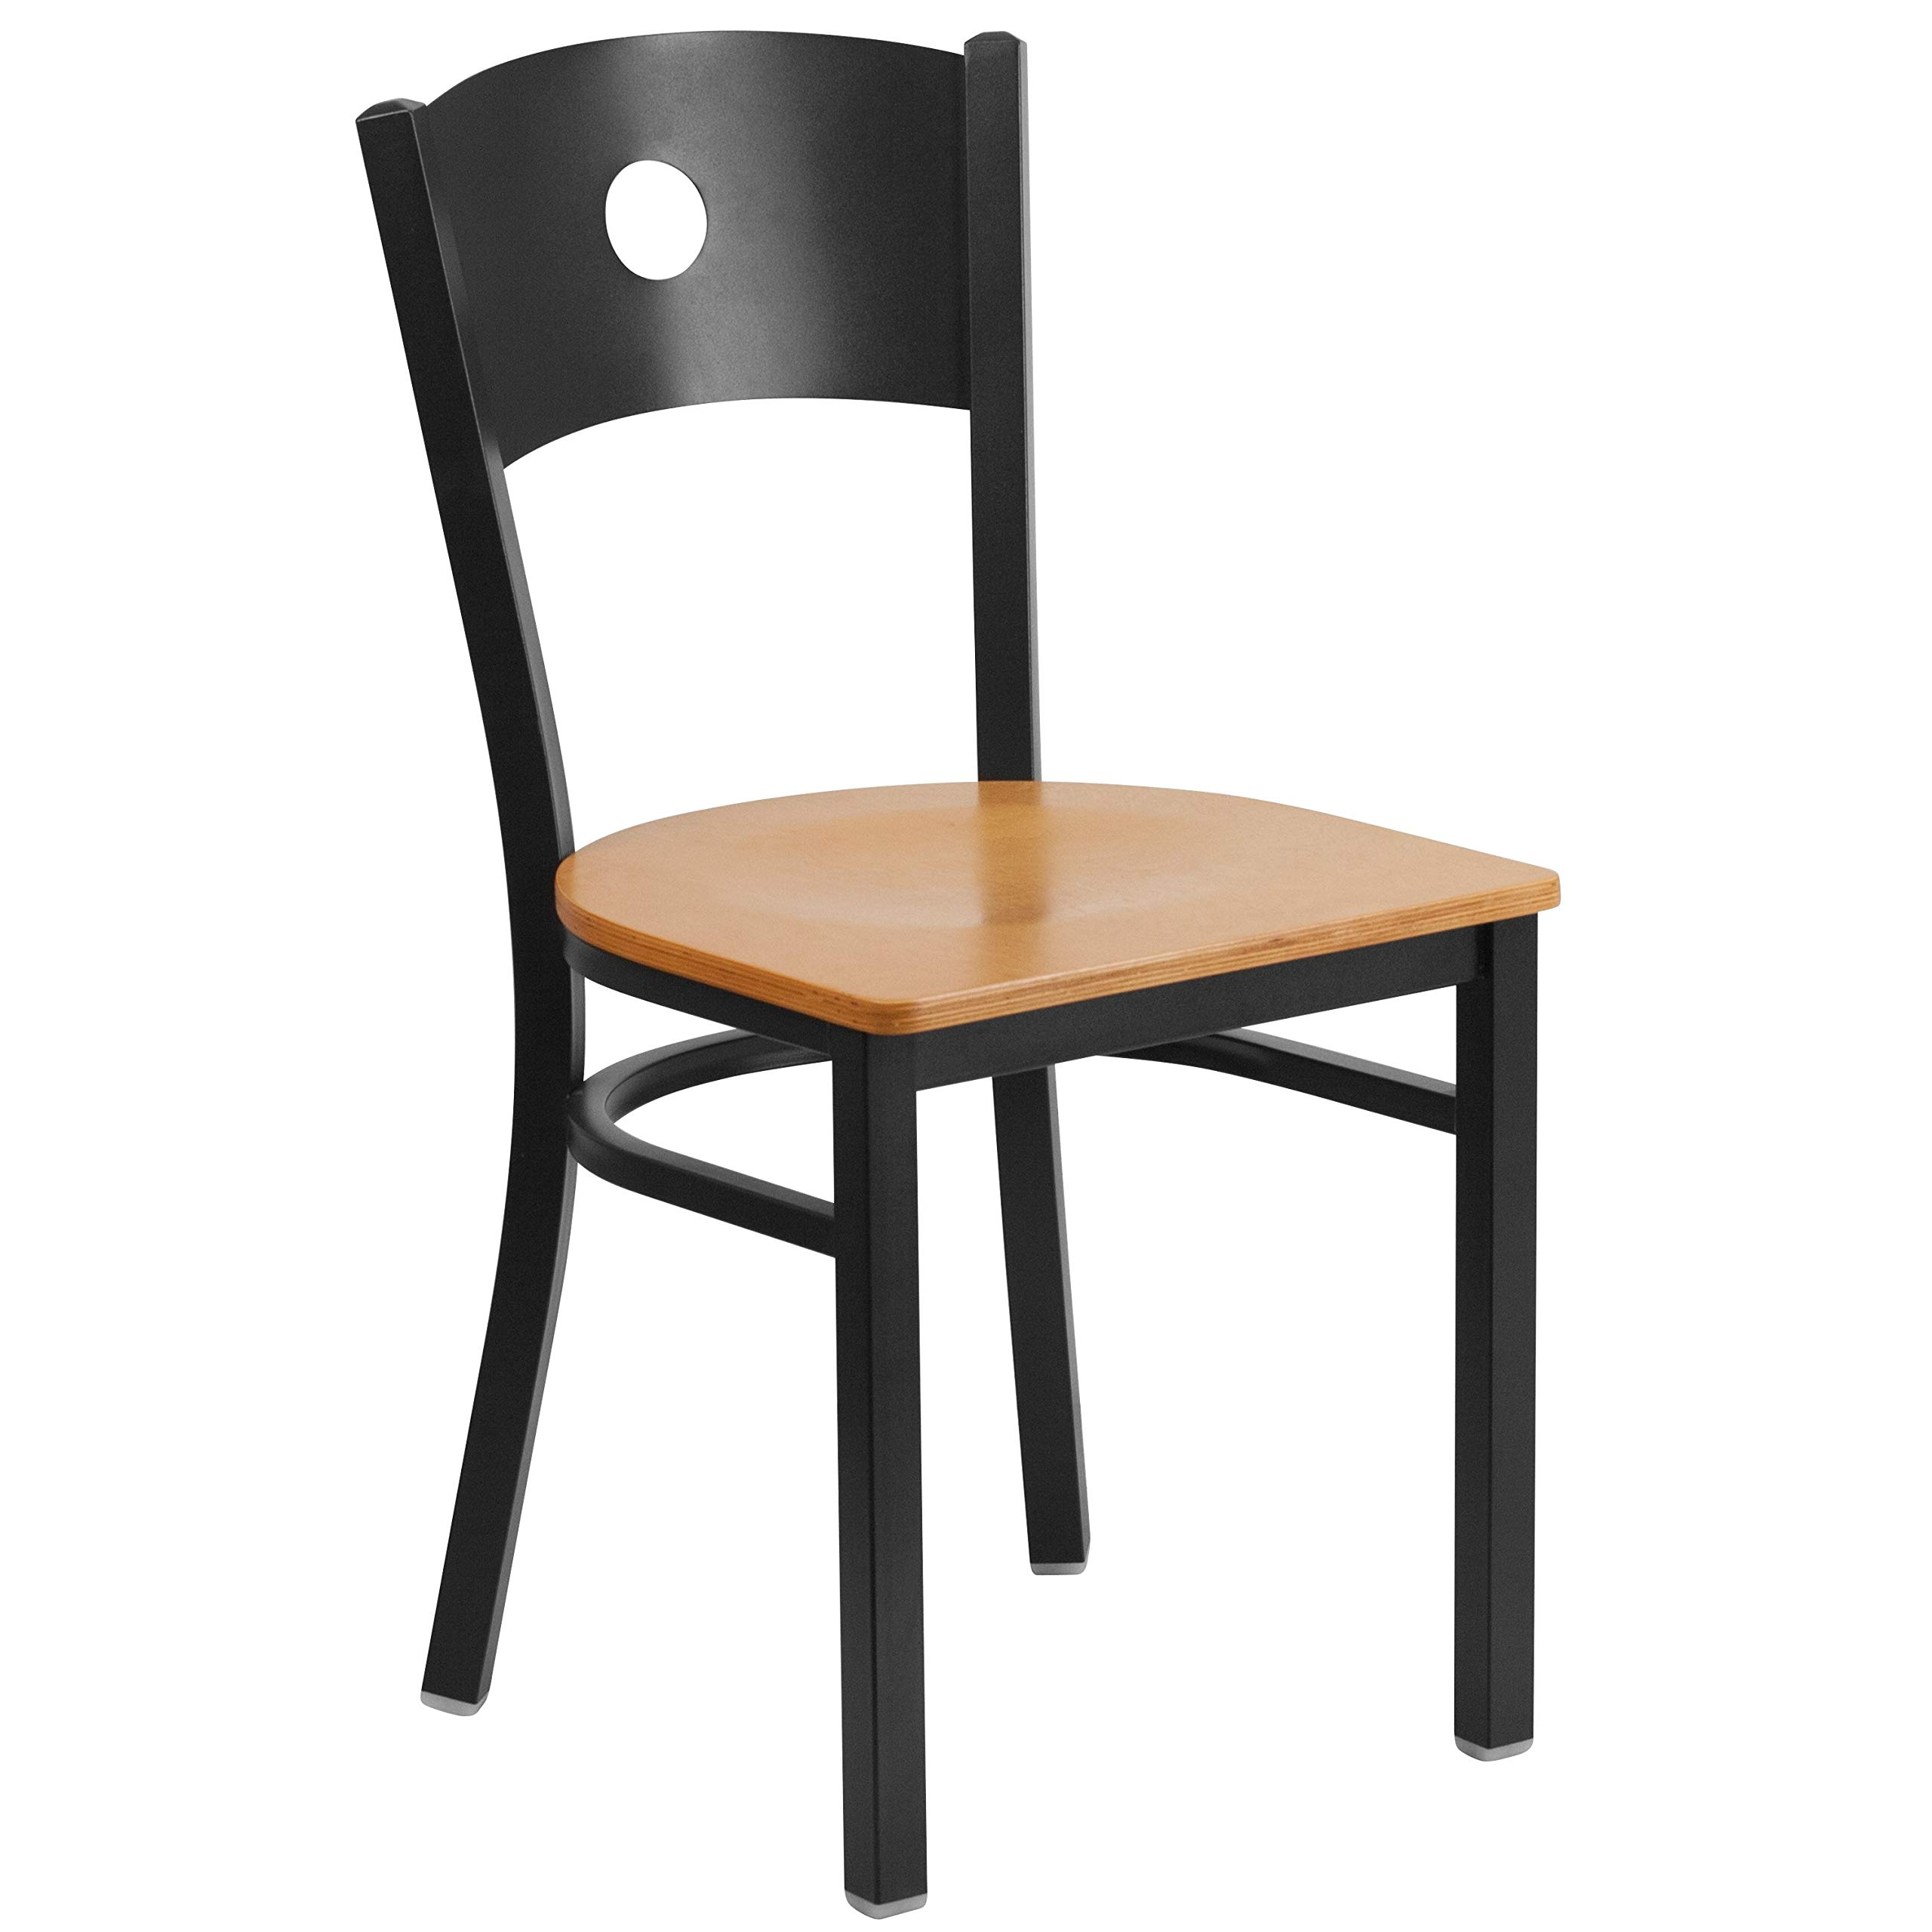 MFO Princeton Collection Black Circle Back Metal Restaurant Chair - Natural Wood Seat by My Friendly Office